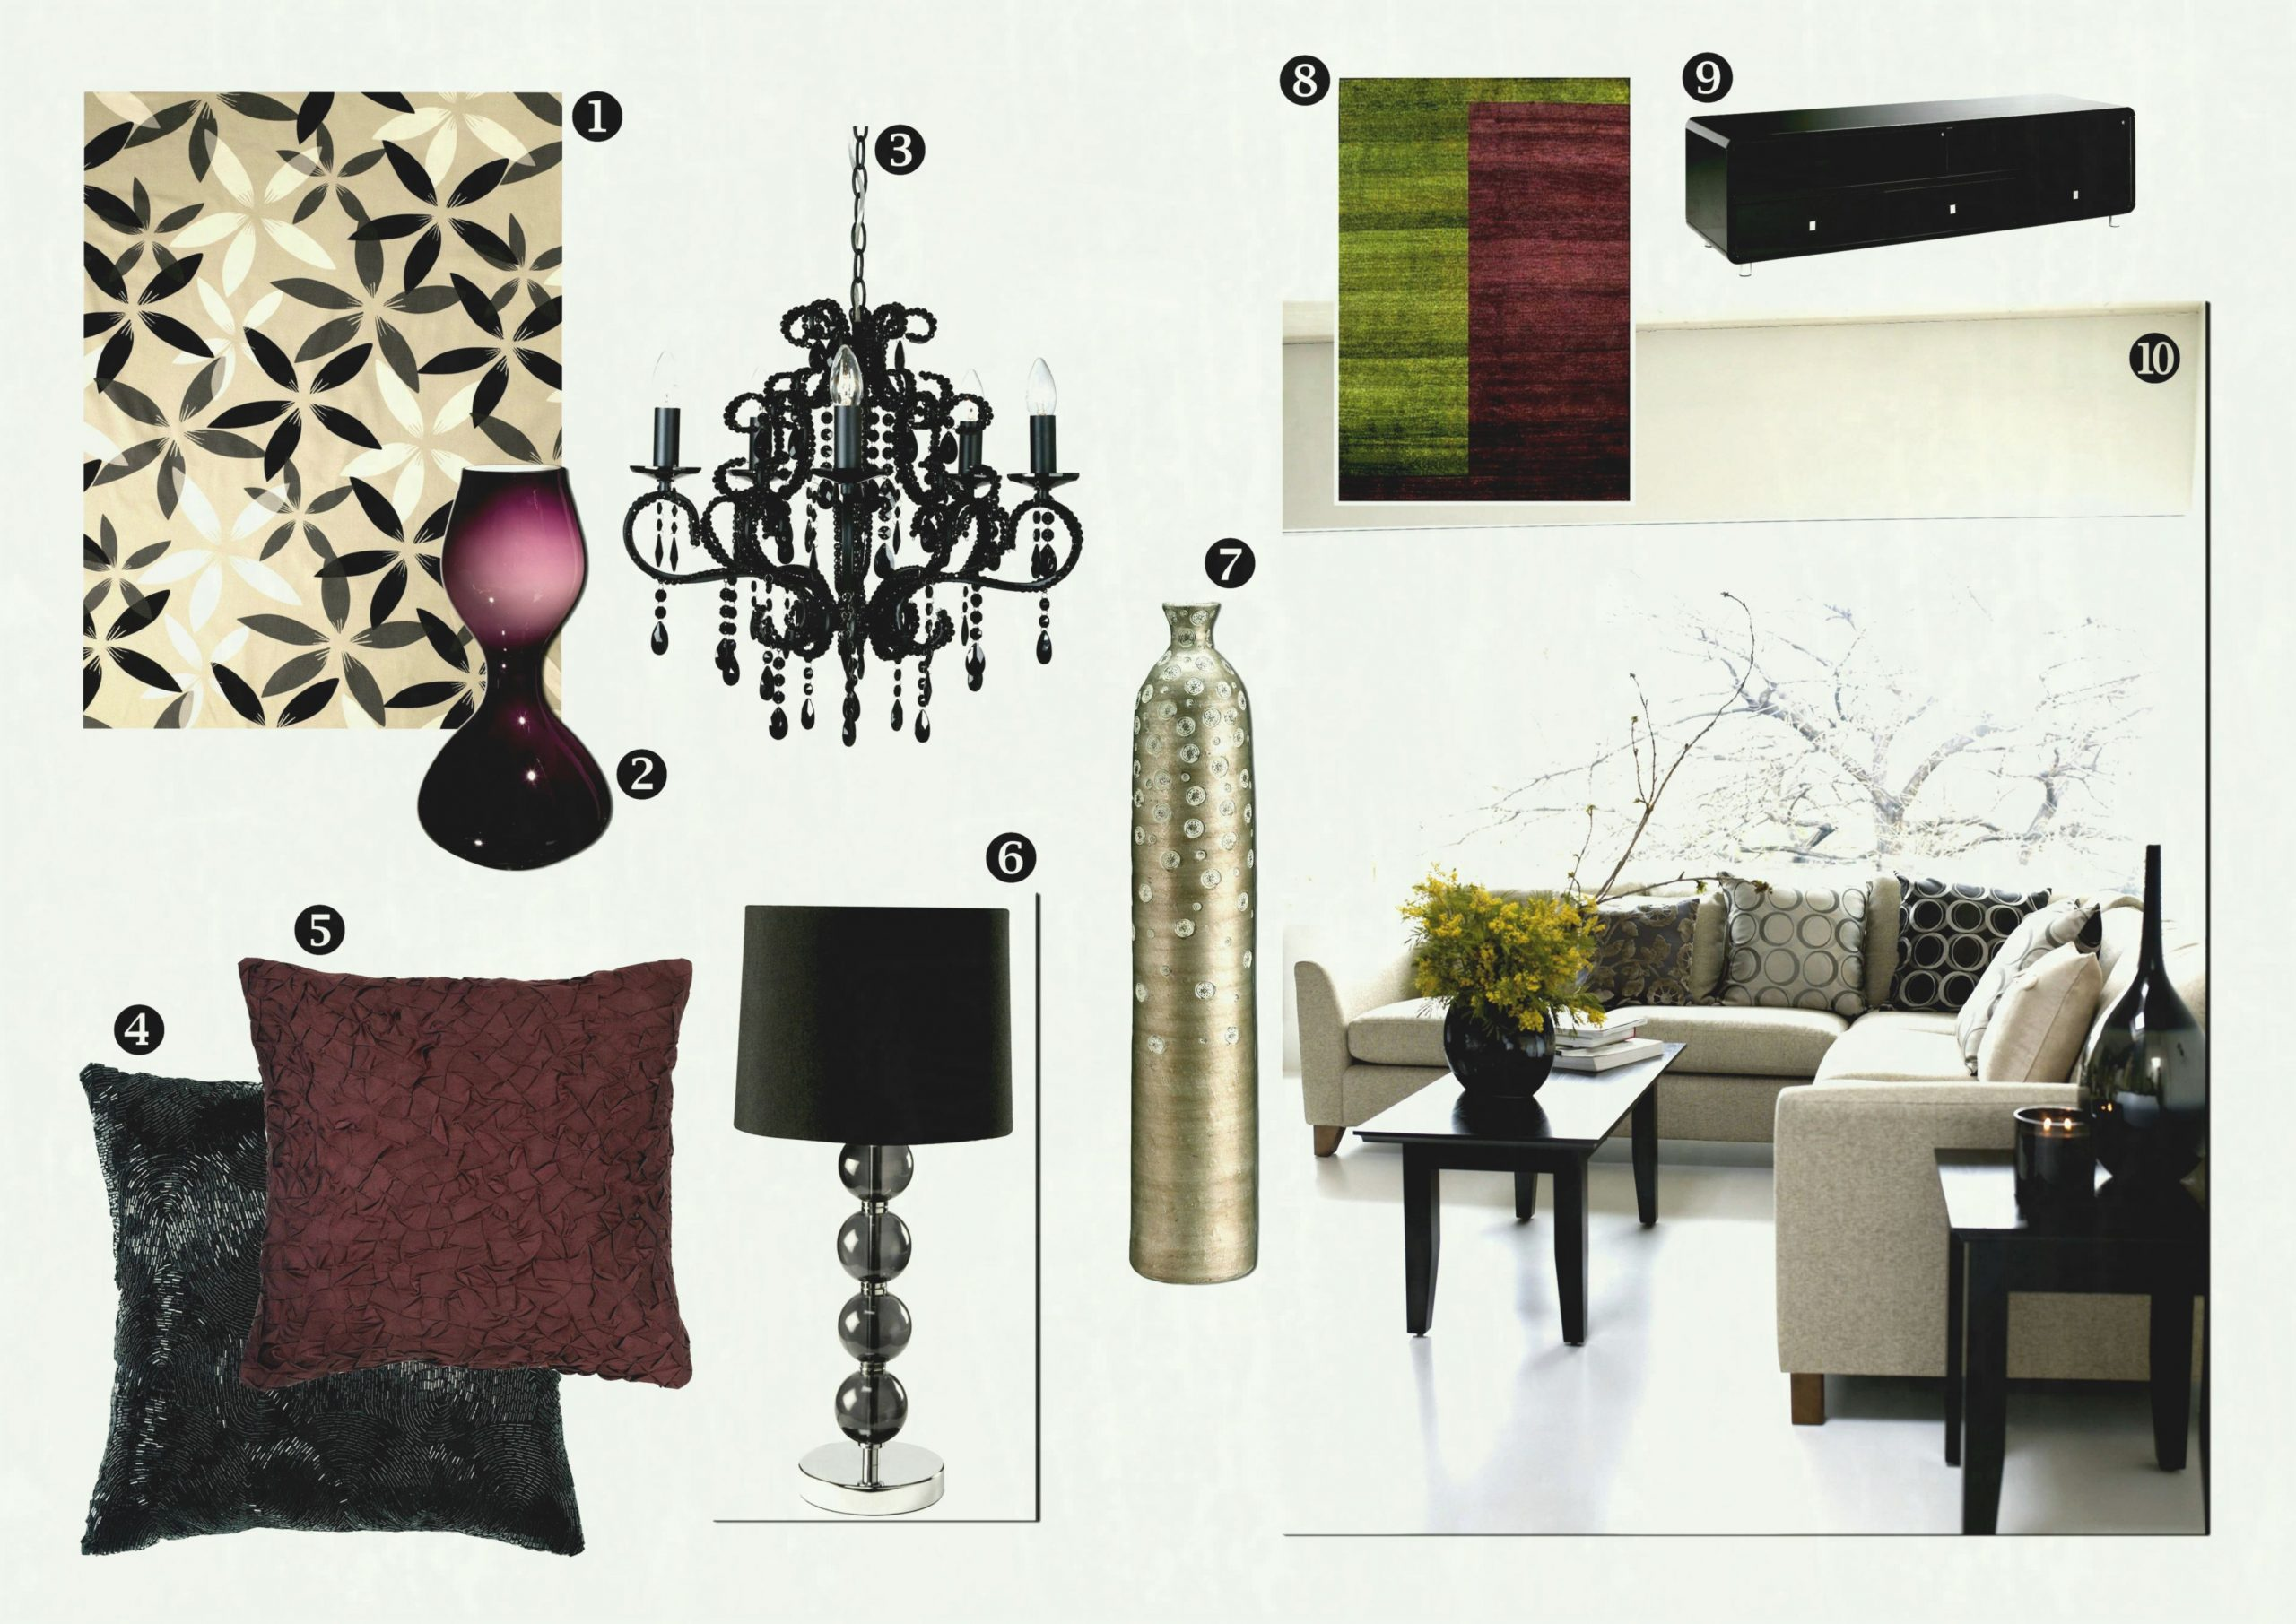 Gallery Of Decoration Pictures Decorative Items For Living throughout Decorative Items For Living Room